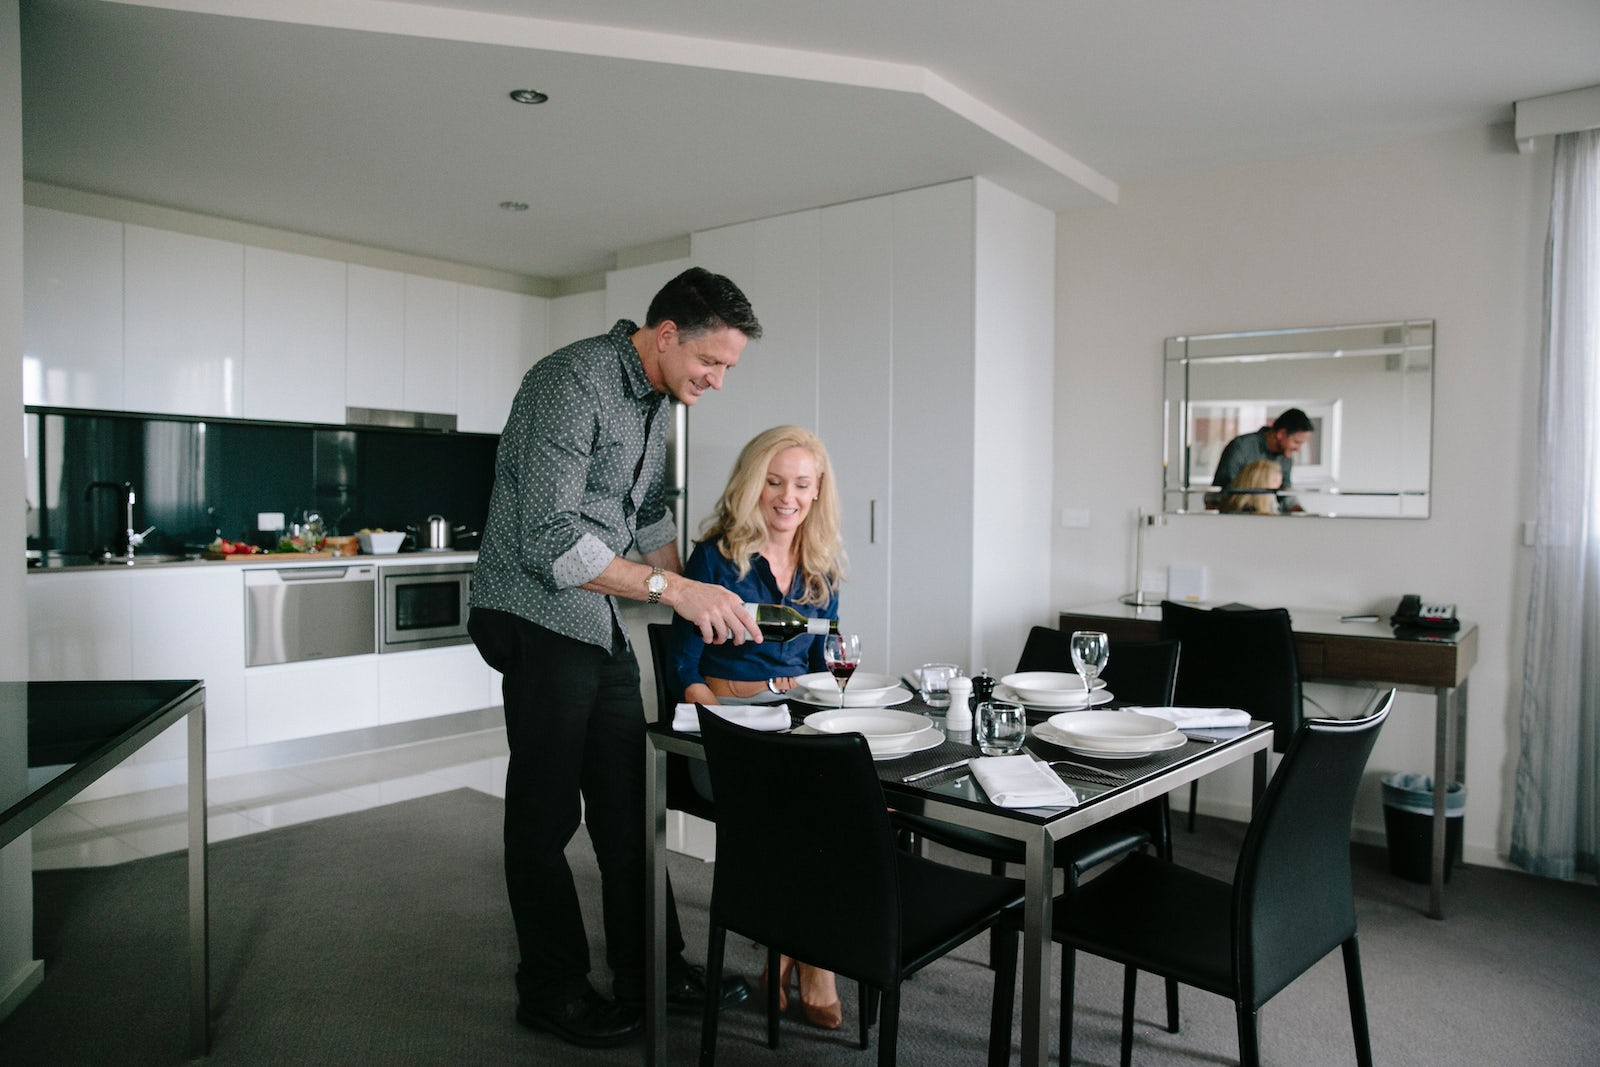 A picture of a man pouring a glass of wine in the Aria Hotel apartment located in Canberra